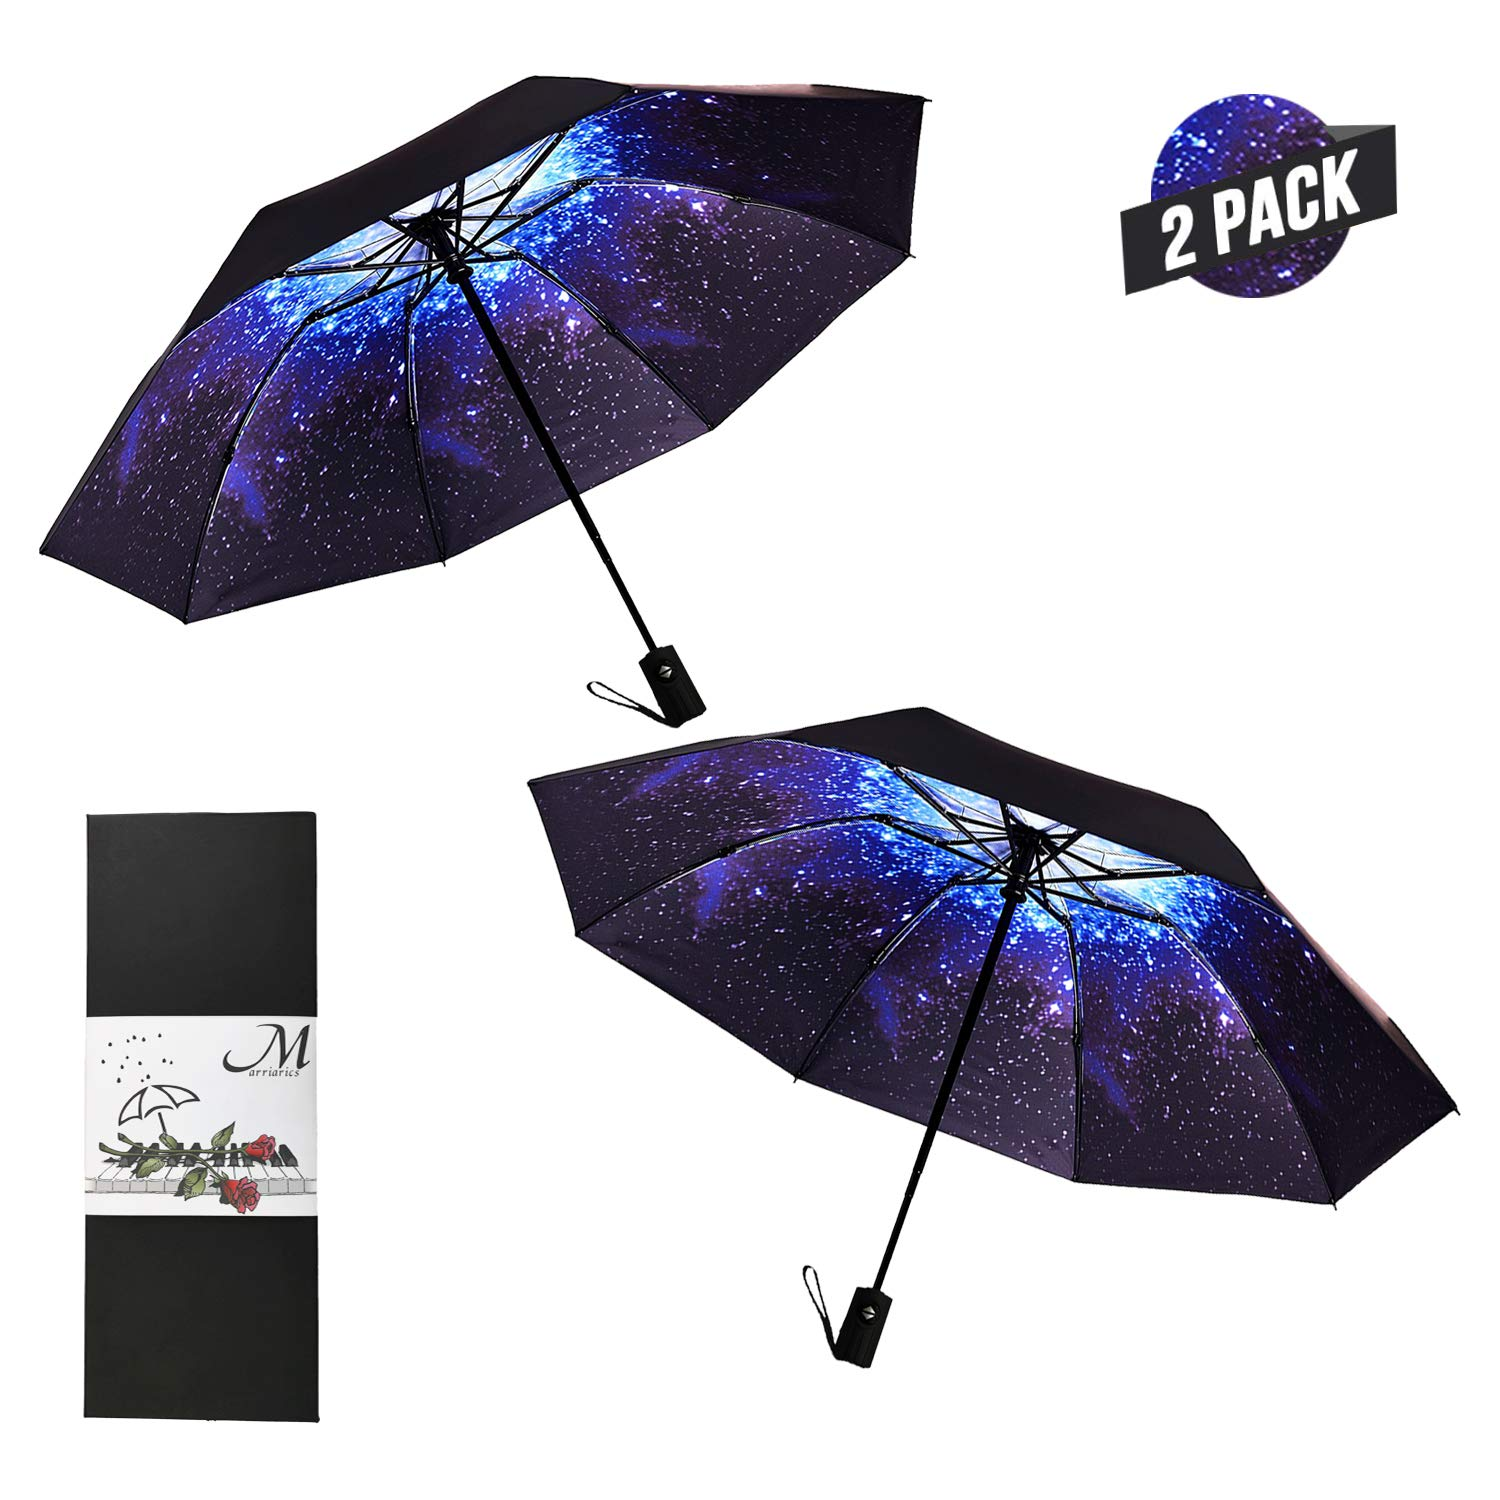 Marriarics Compact Travel Umbrella Windproof, 2 Pack Starry Sky, Nice Package for Gift.